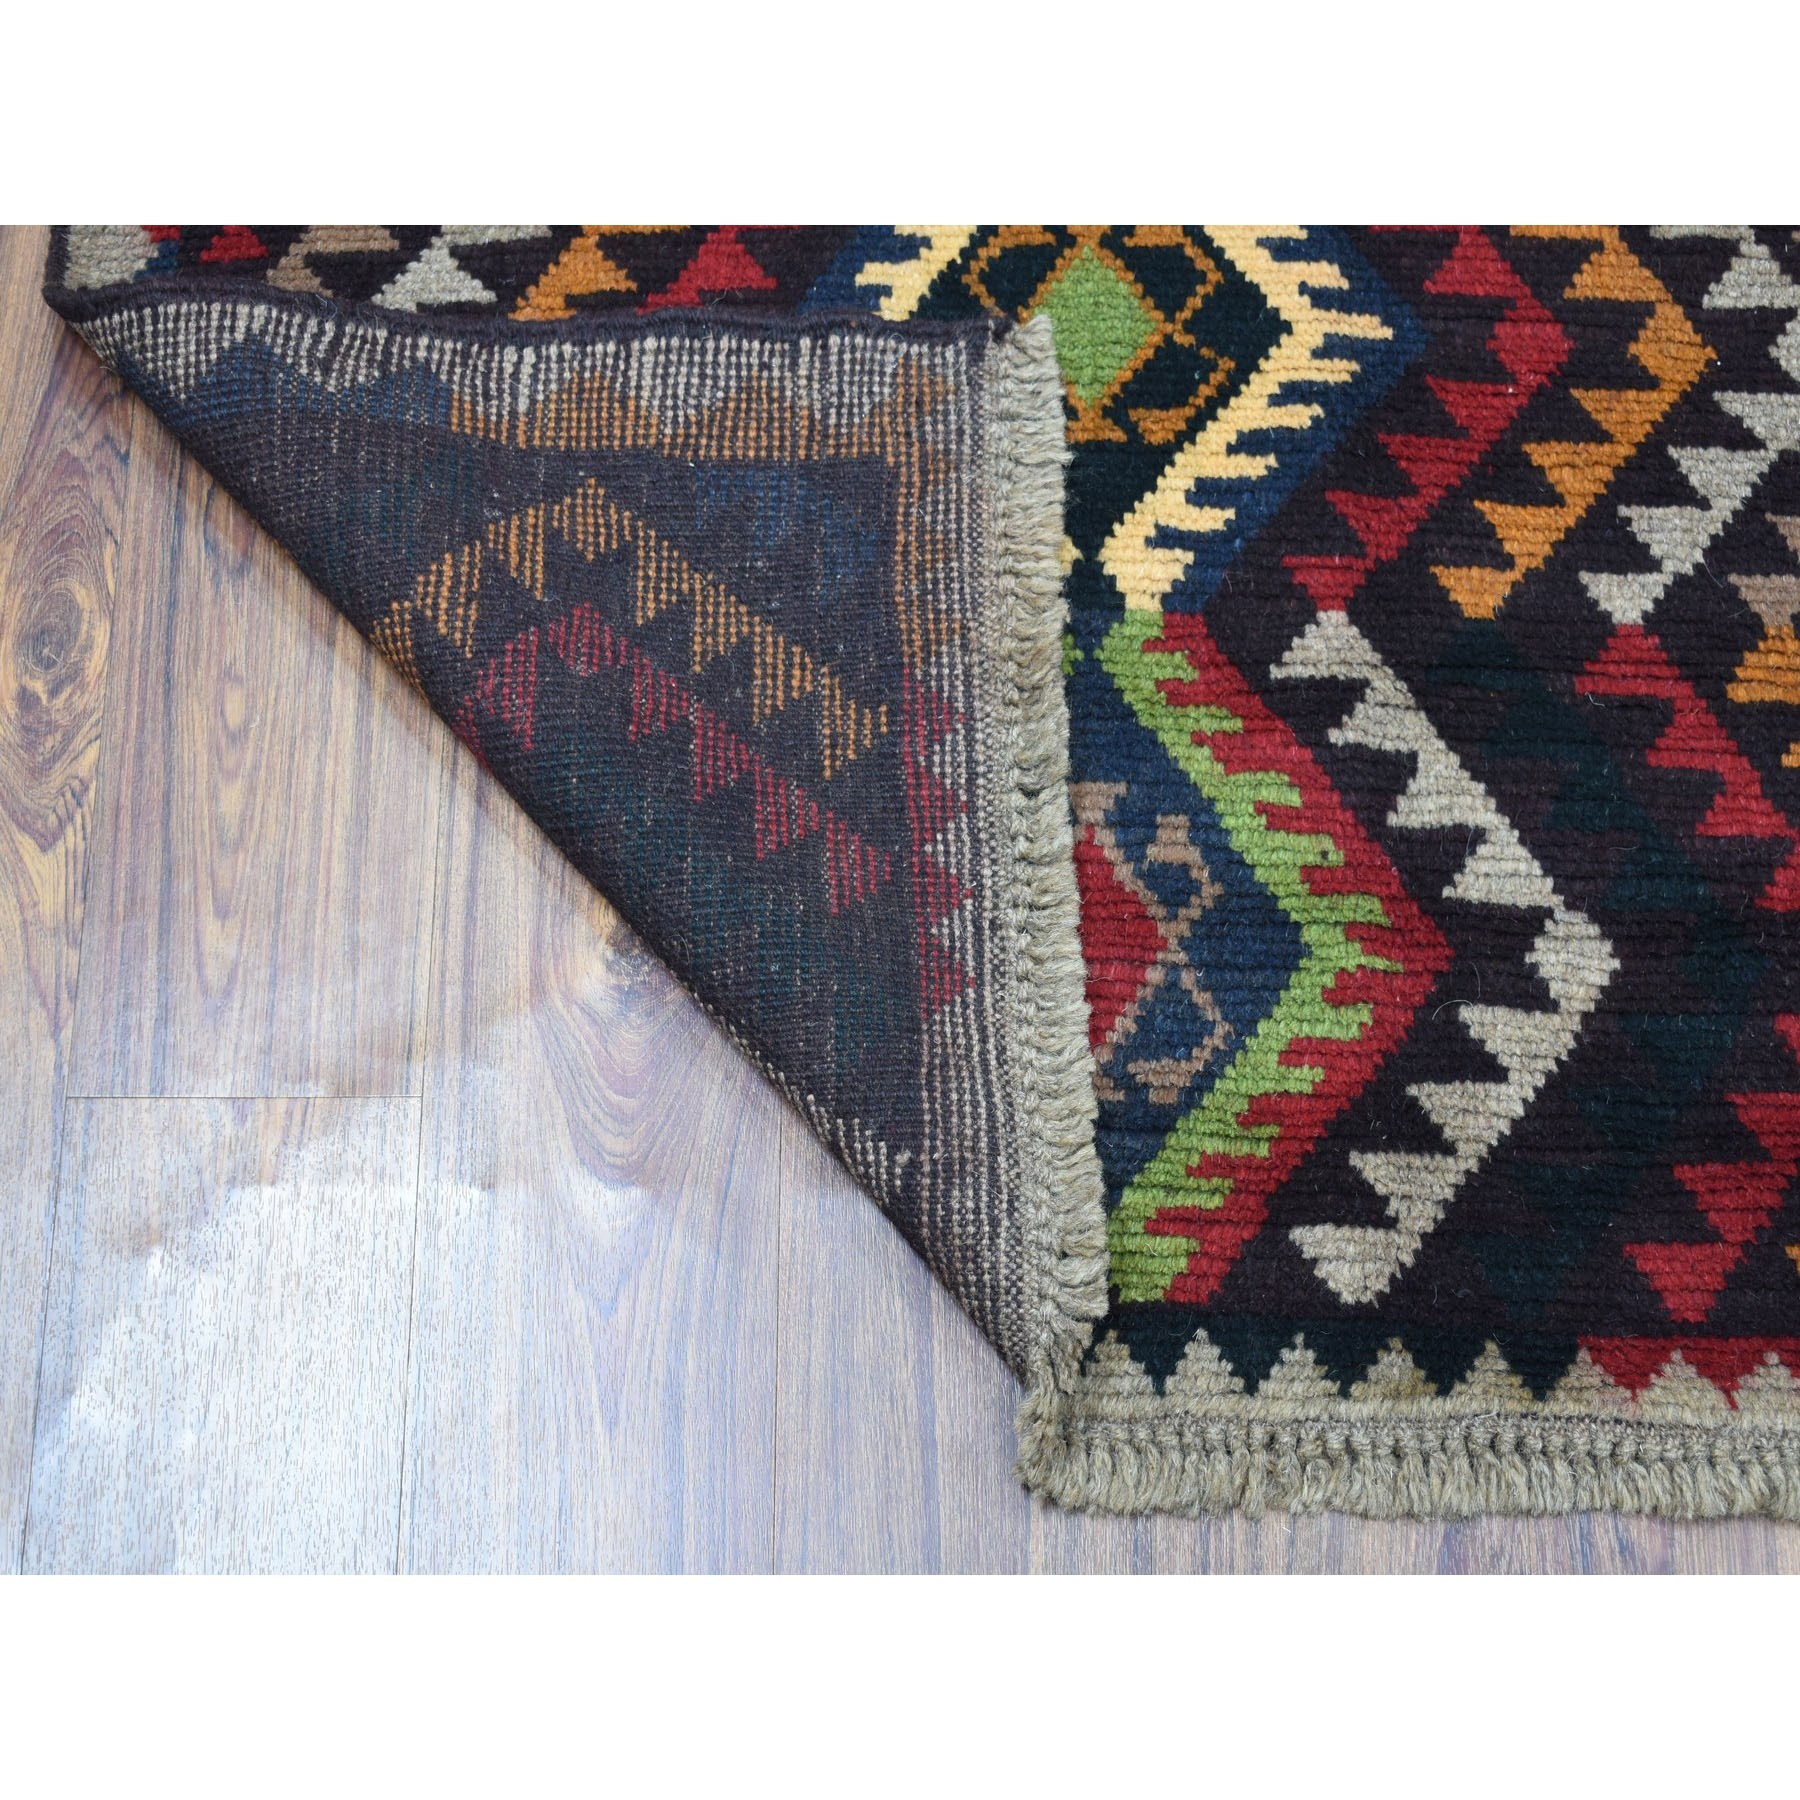 6-x8- Black Colorful Afghan Baluch Geometric Design Hand Knotted Pure Wool Runner Oriental Rug